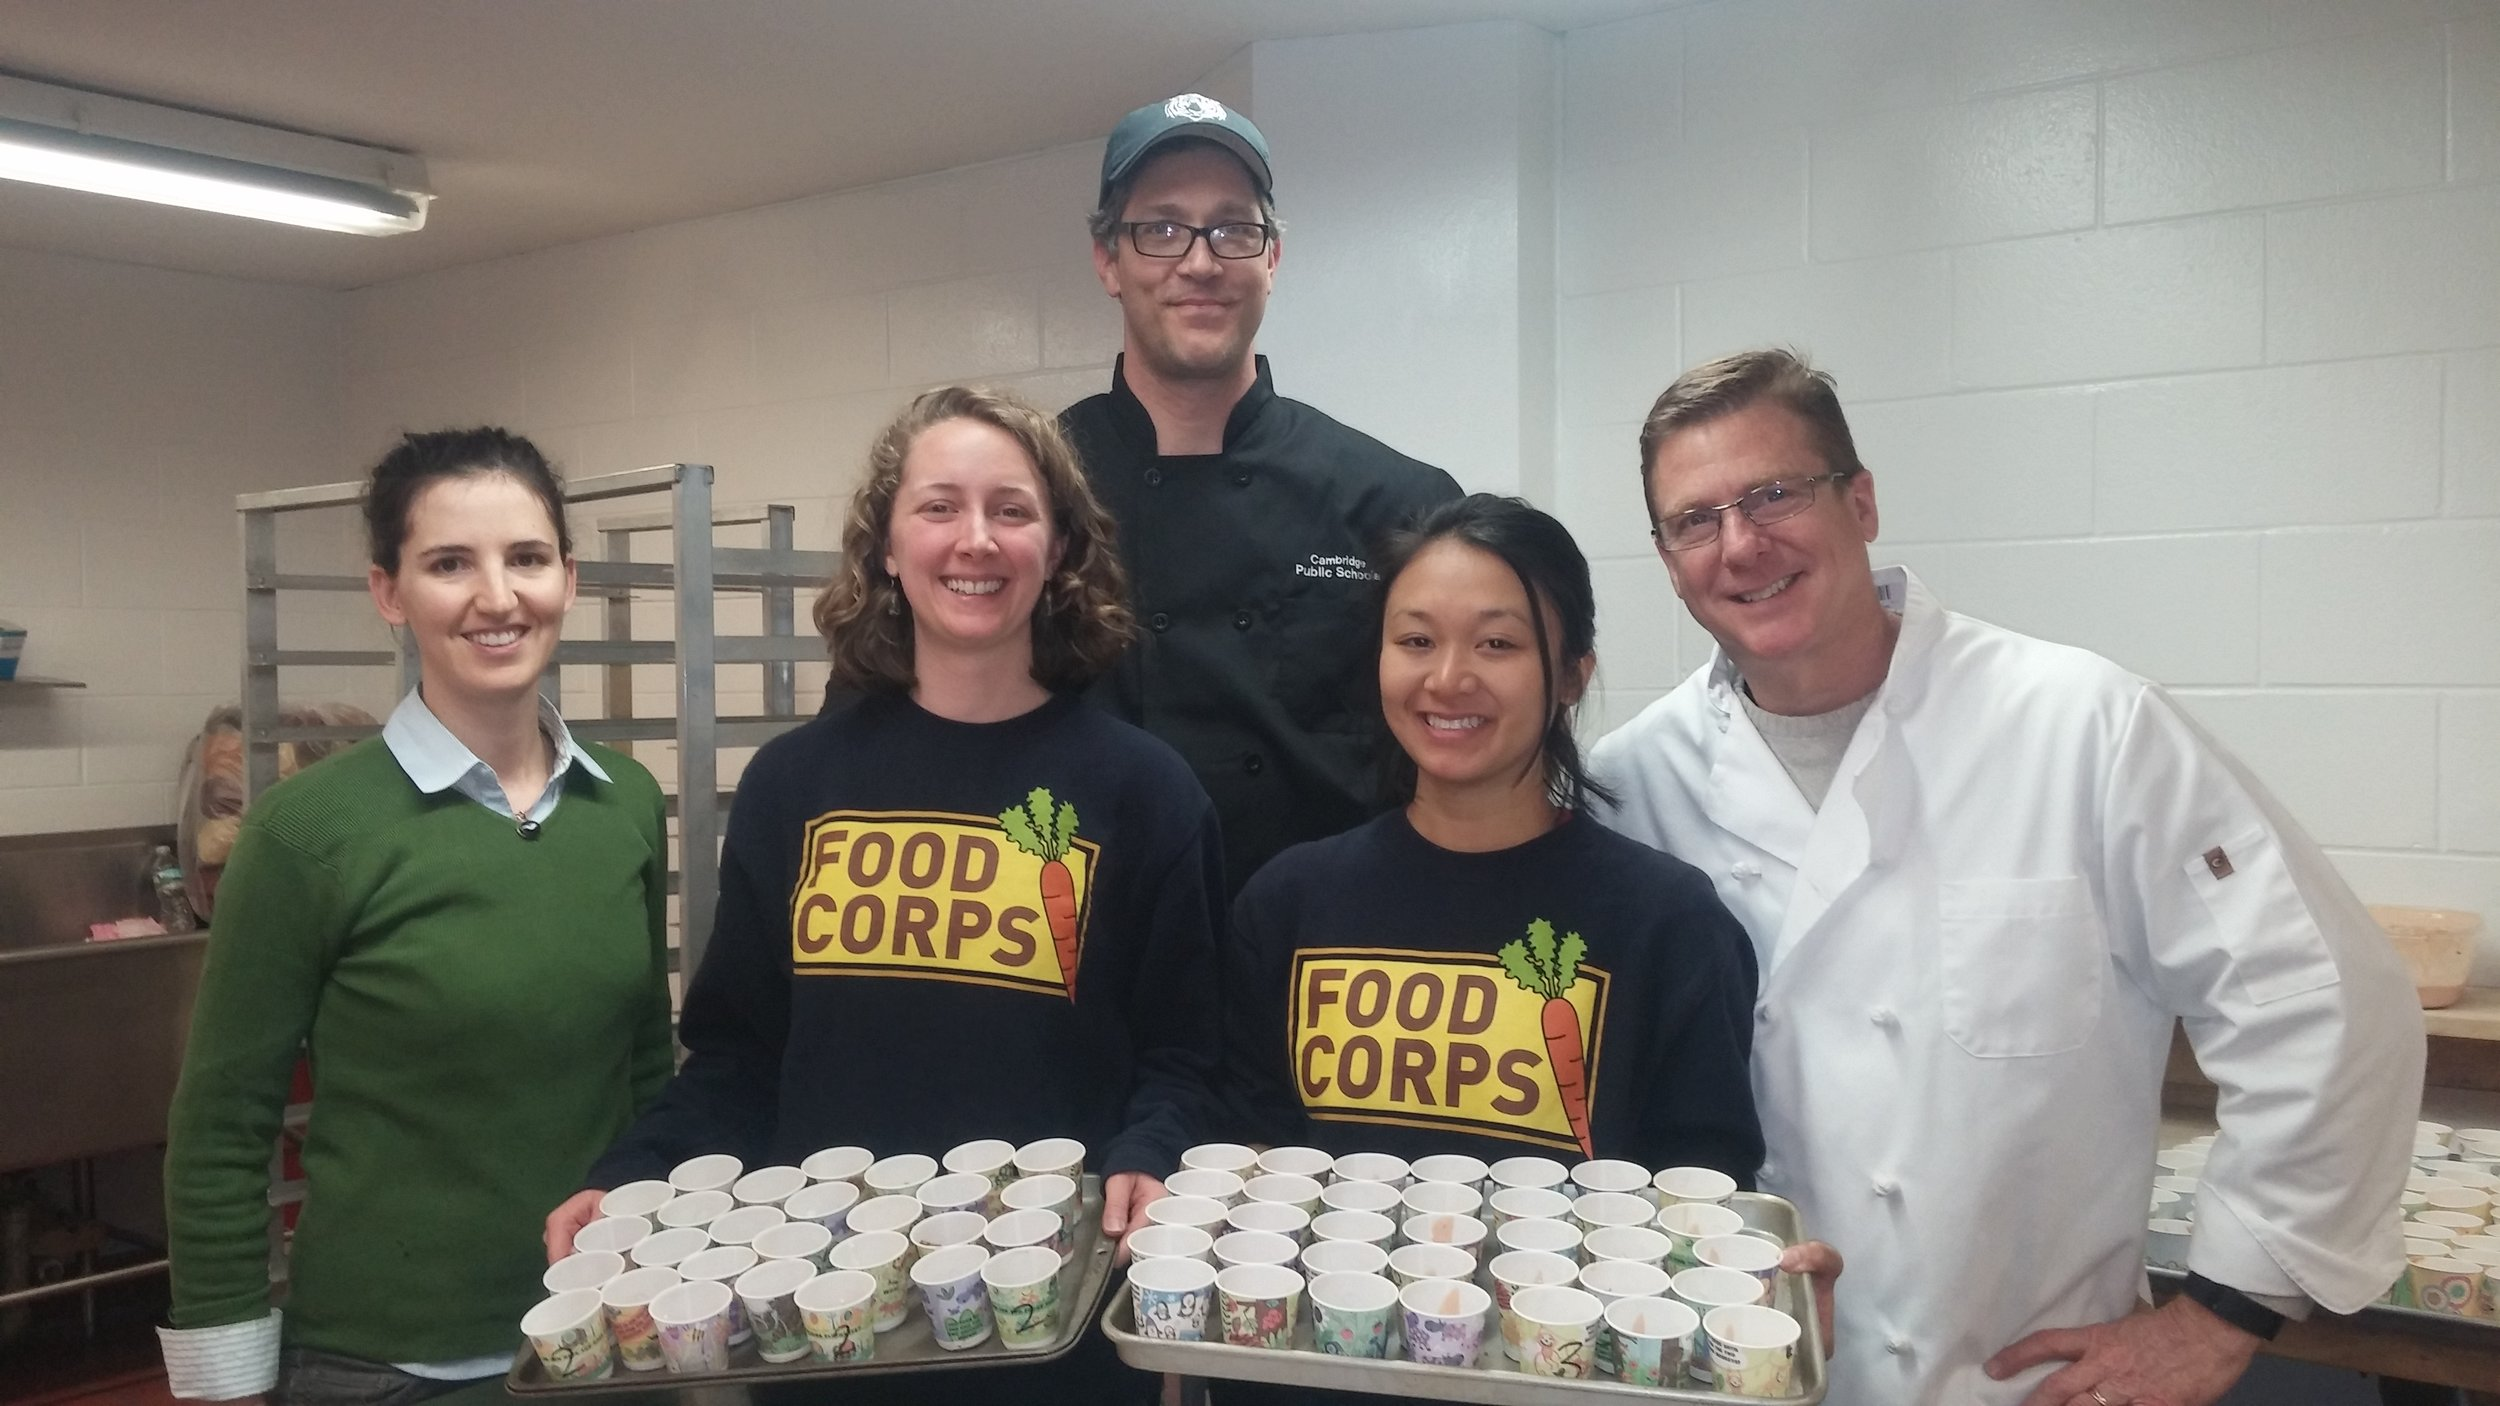 CitySprouts' FoodCorps Service Members Corey Carmichael and Rochelle Li with Mellissa Honeywood, Chef Andrew, and Chef Paul